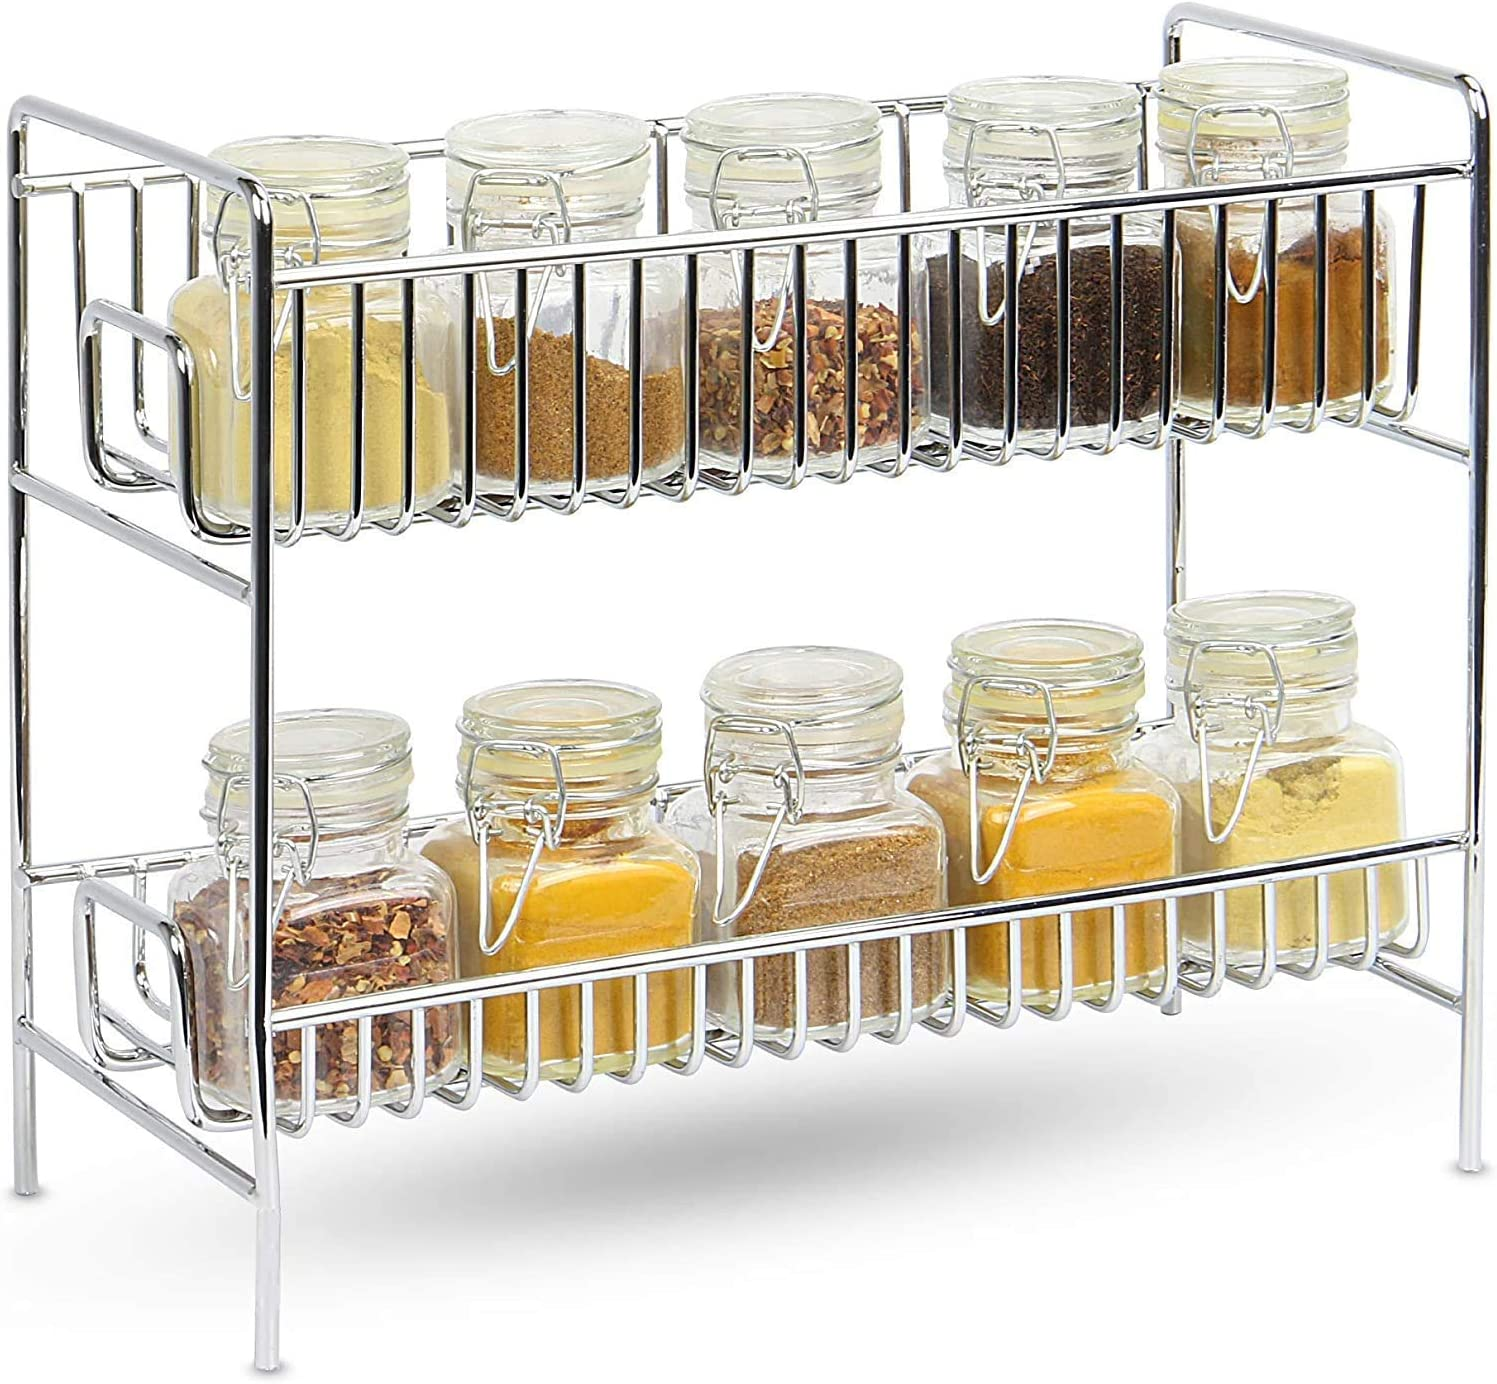 2-Tier Standing Rack Shelf Holder Spice Rack Countertop Storage Organizer for Kitchen Bathroom Office (Silver)